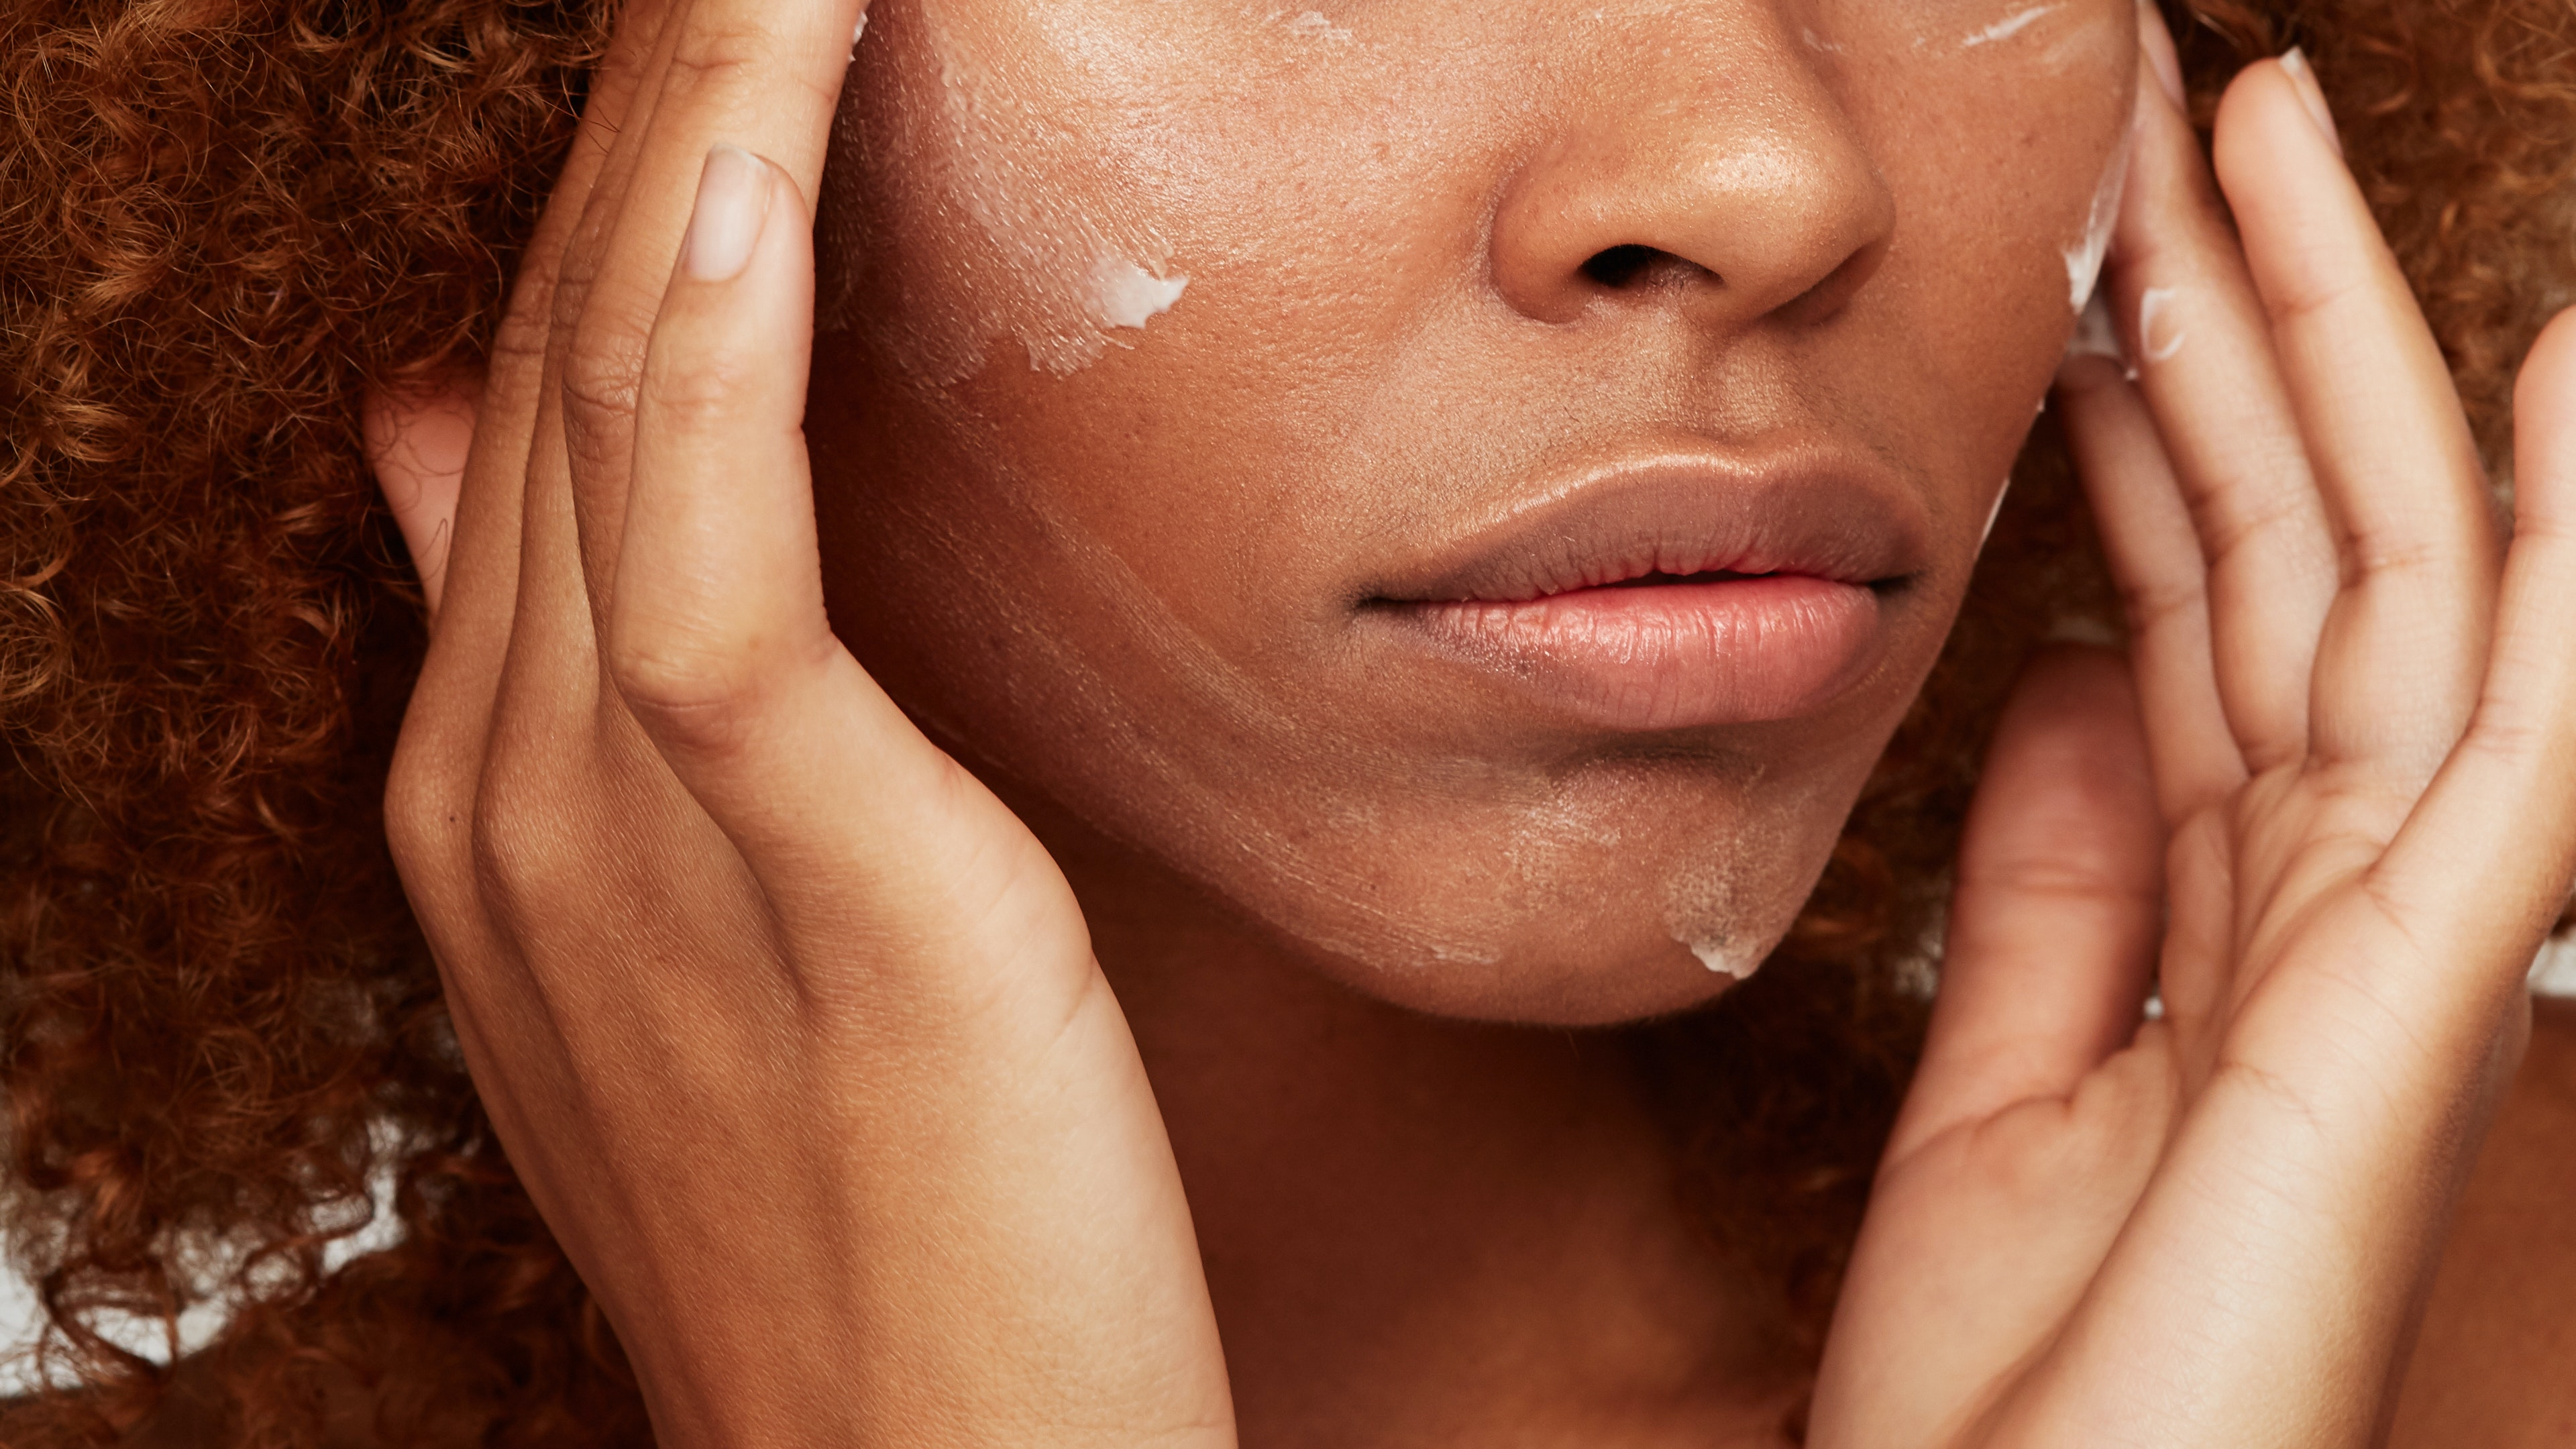 Black woman putting on white face cream.